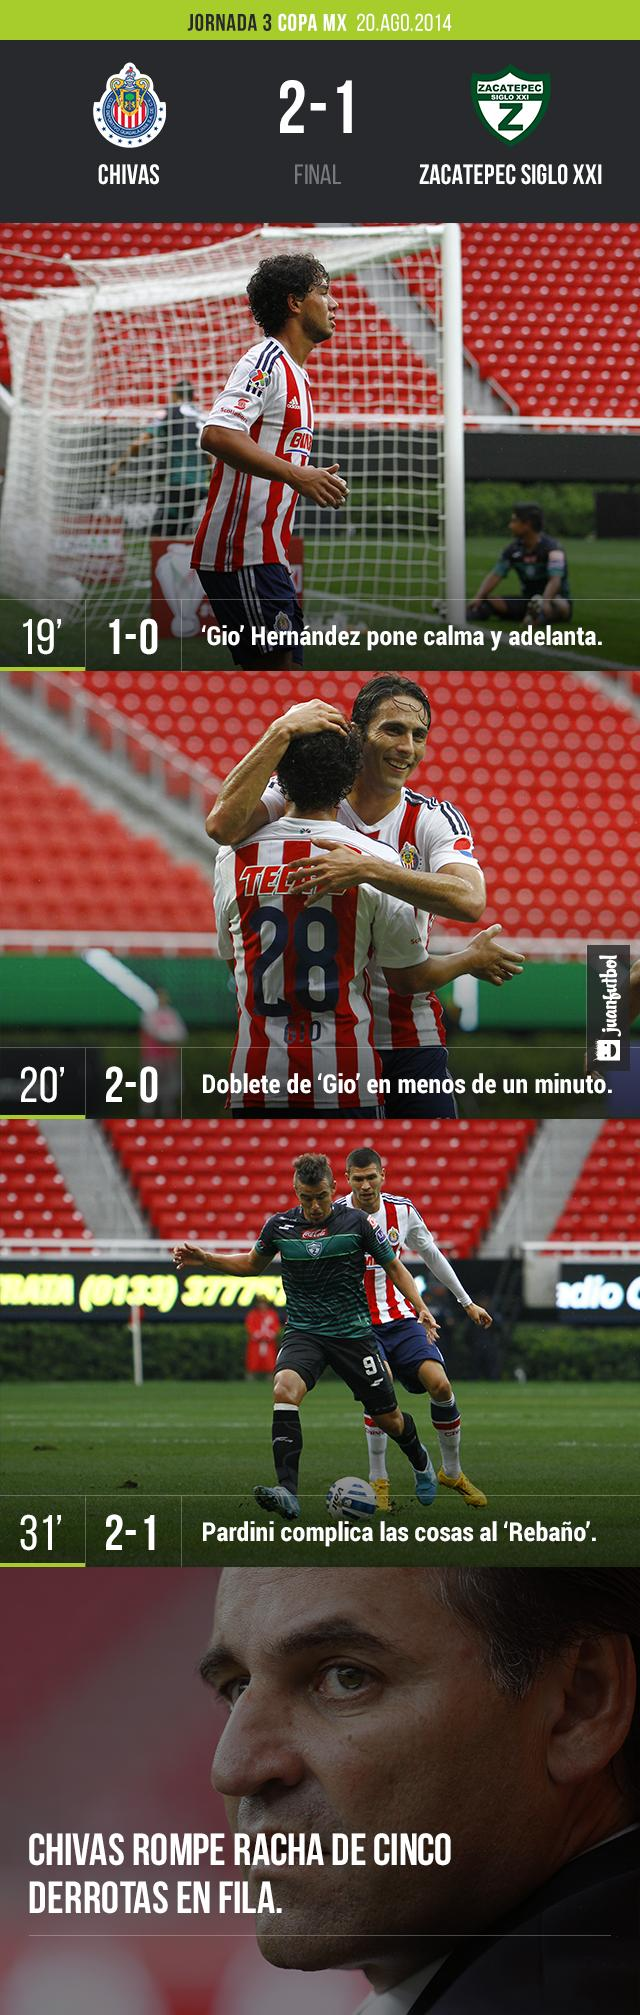 Chivas vs. Zacatepec